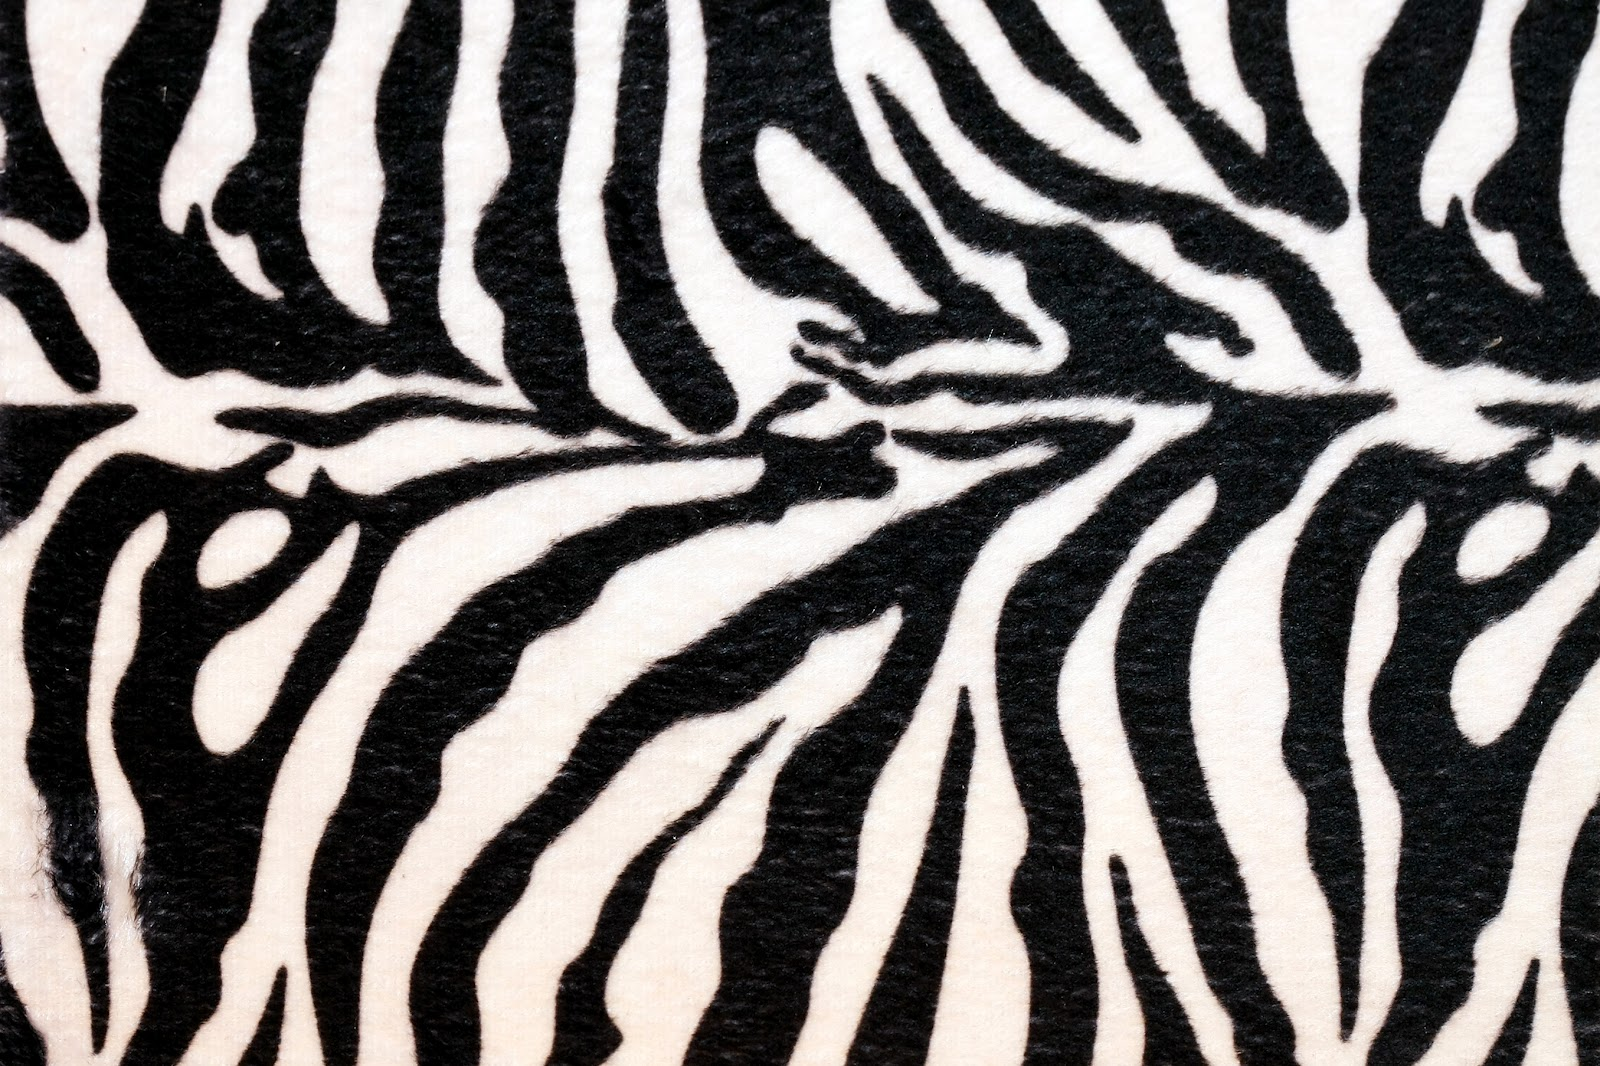 Zebra Print Backgrounds on Giraffe Coloring Pages